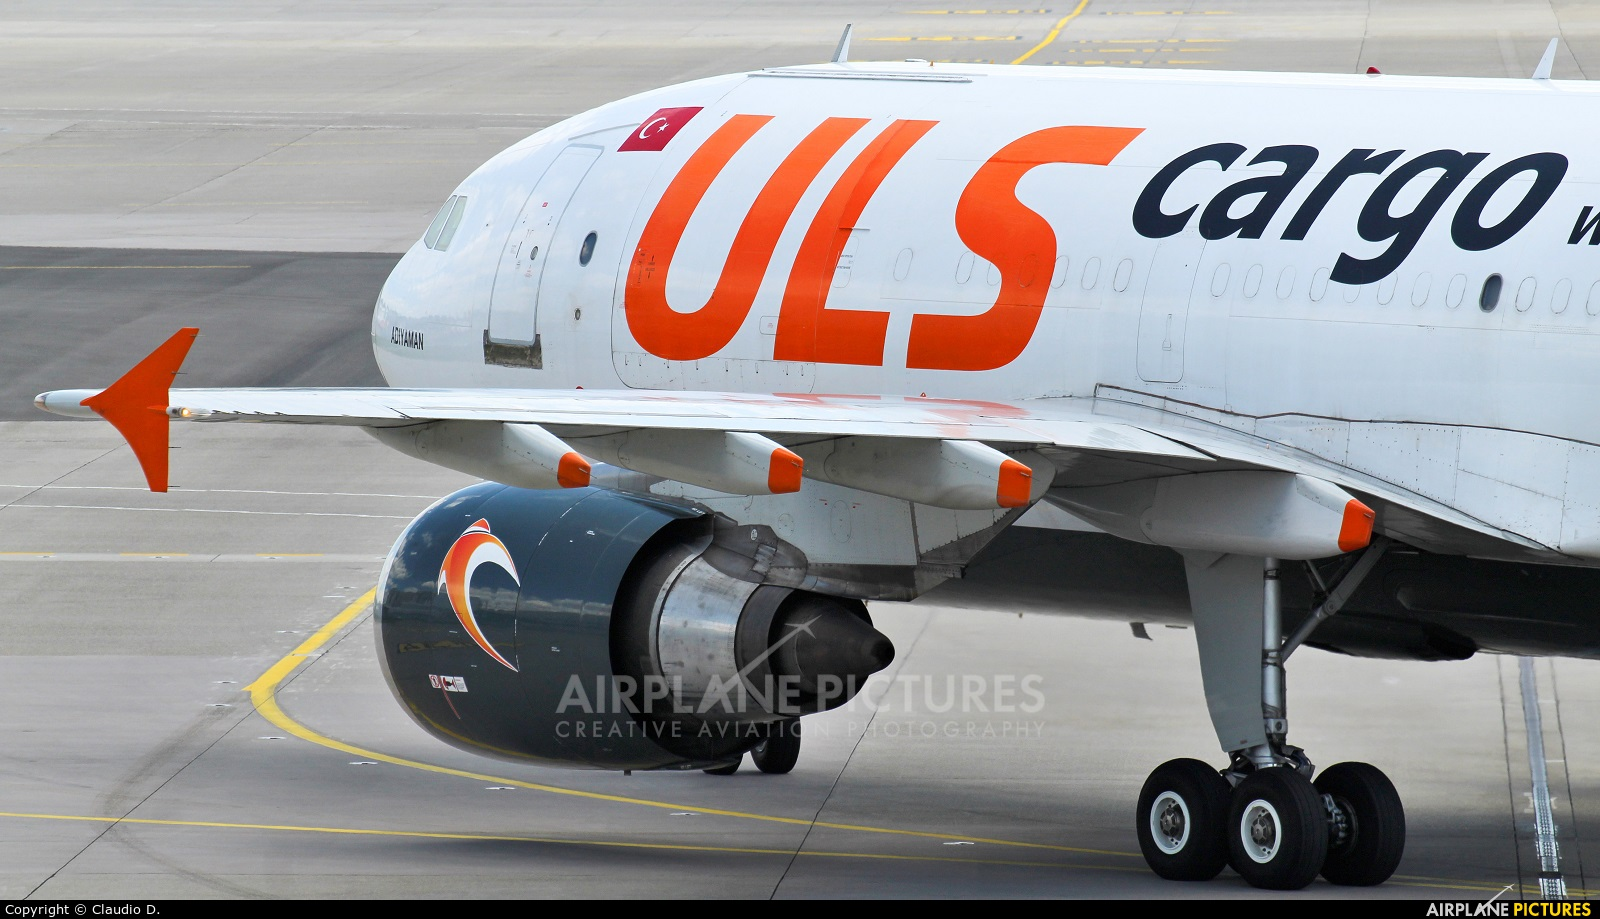 ULS Cargo TC-VEL aircraft at Zurich